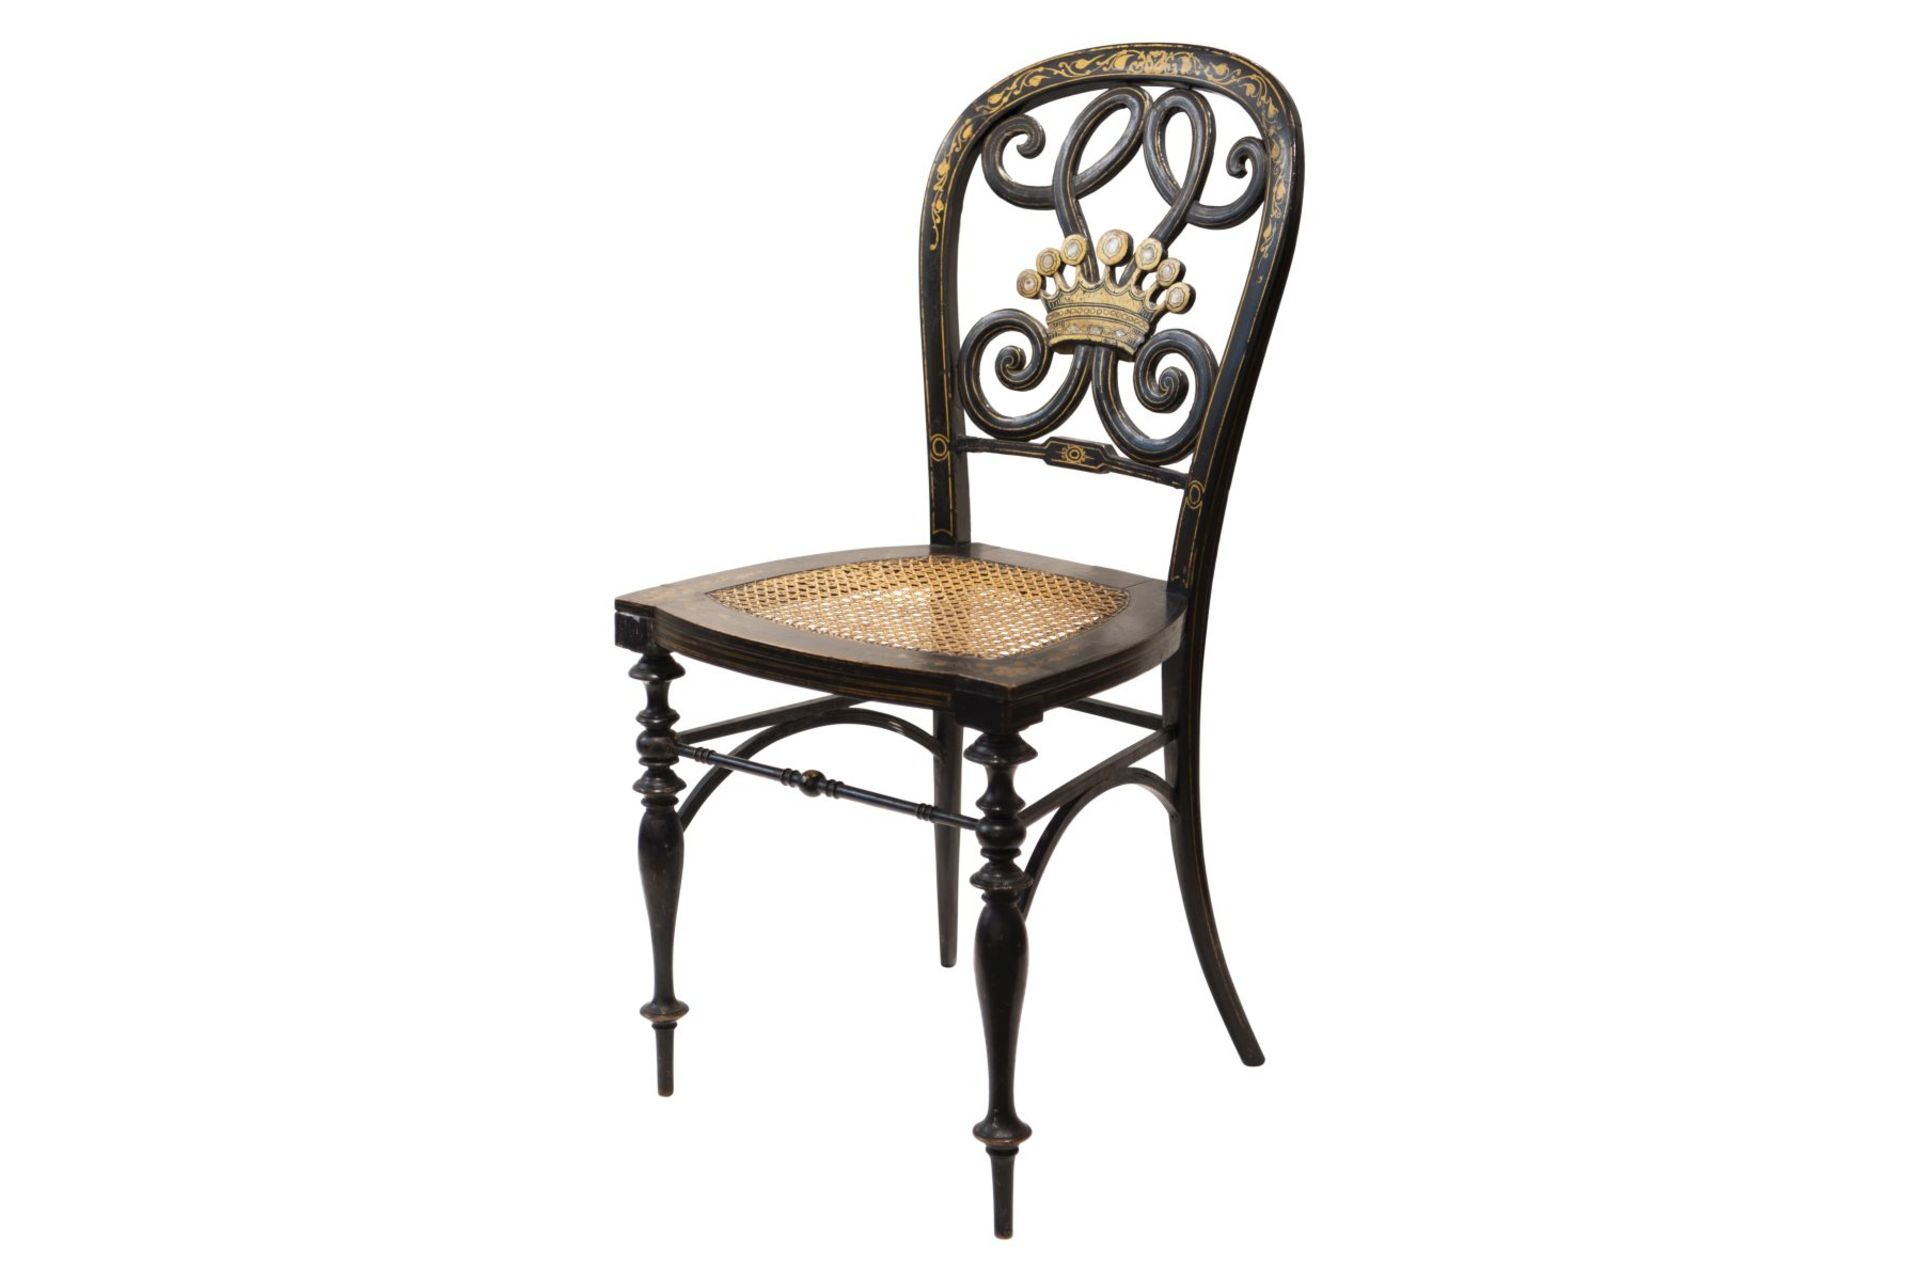 Decorative chair, French Chinoiserie - Image 3 of 7